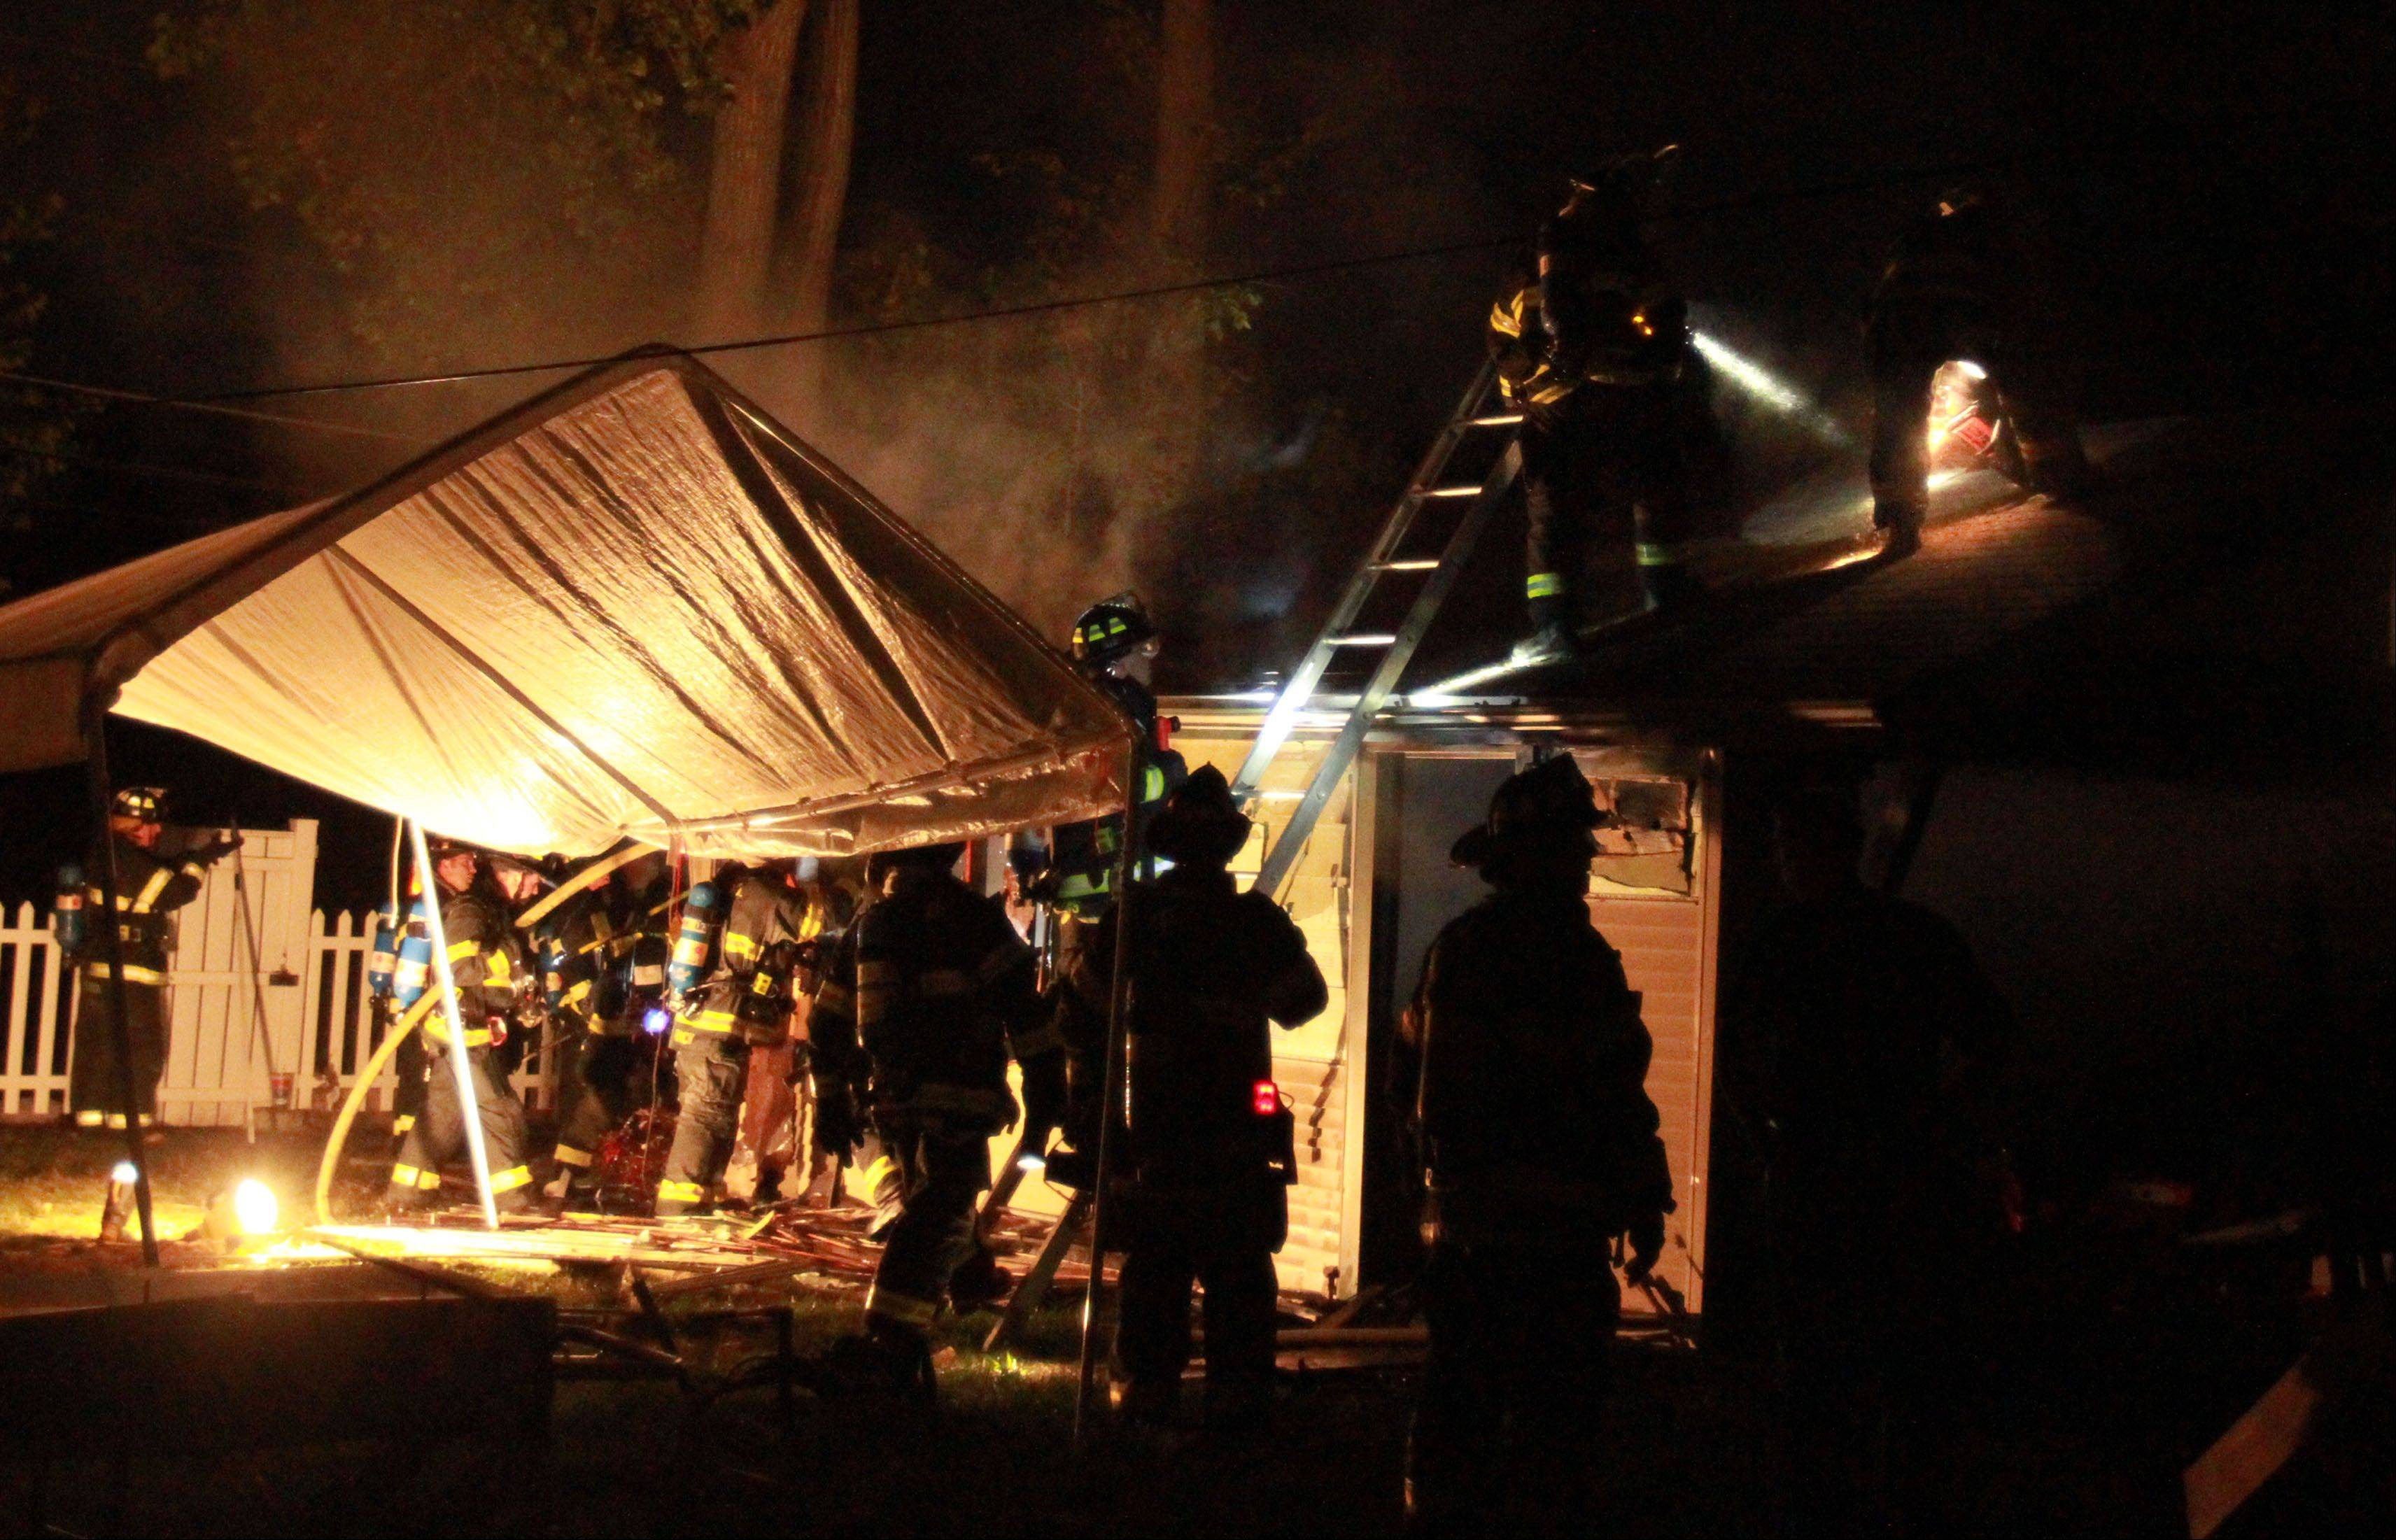 No injuries in an unattached garage fire on Cumberland Parkway just north of Golf Road in Des Plaines on Sunday.